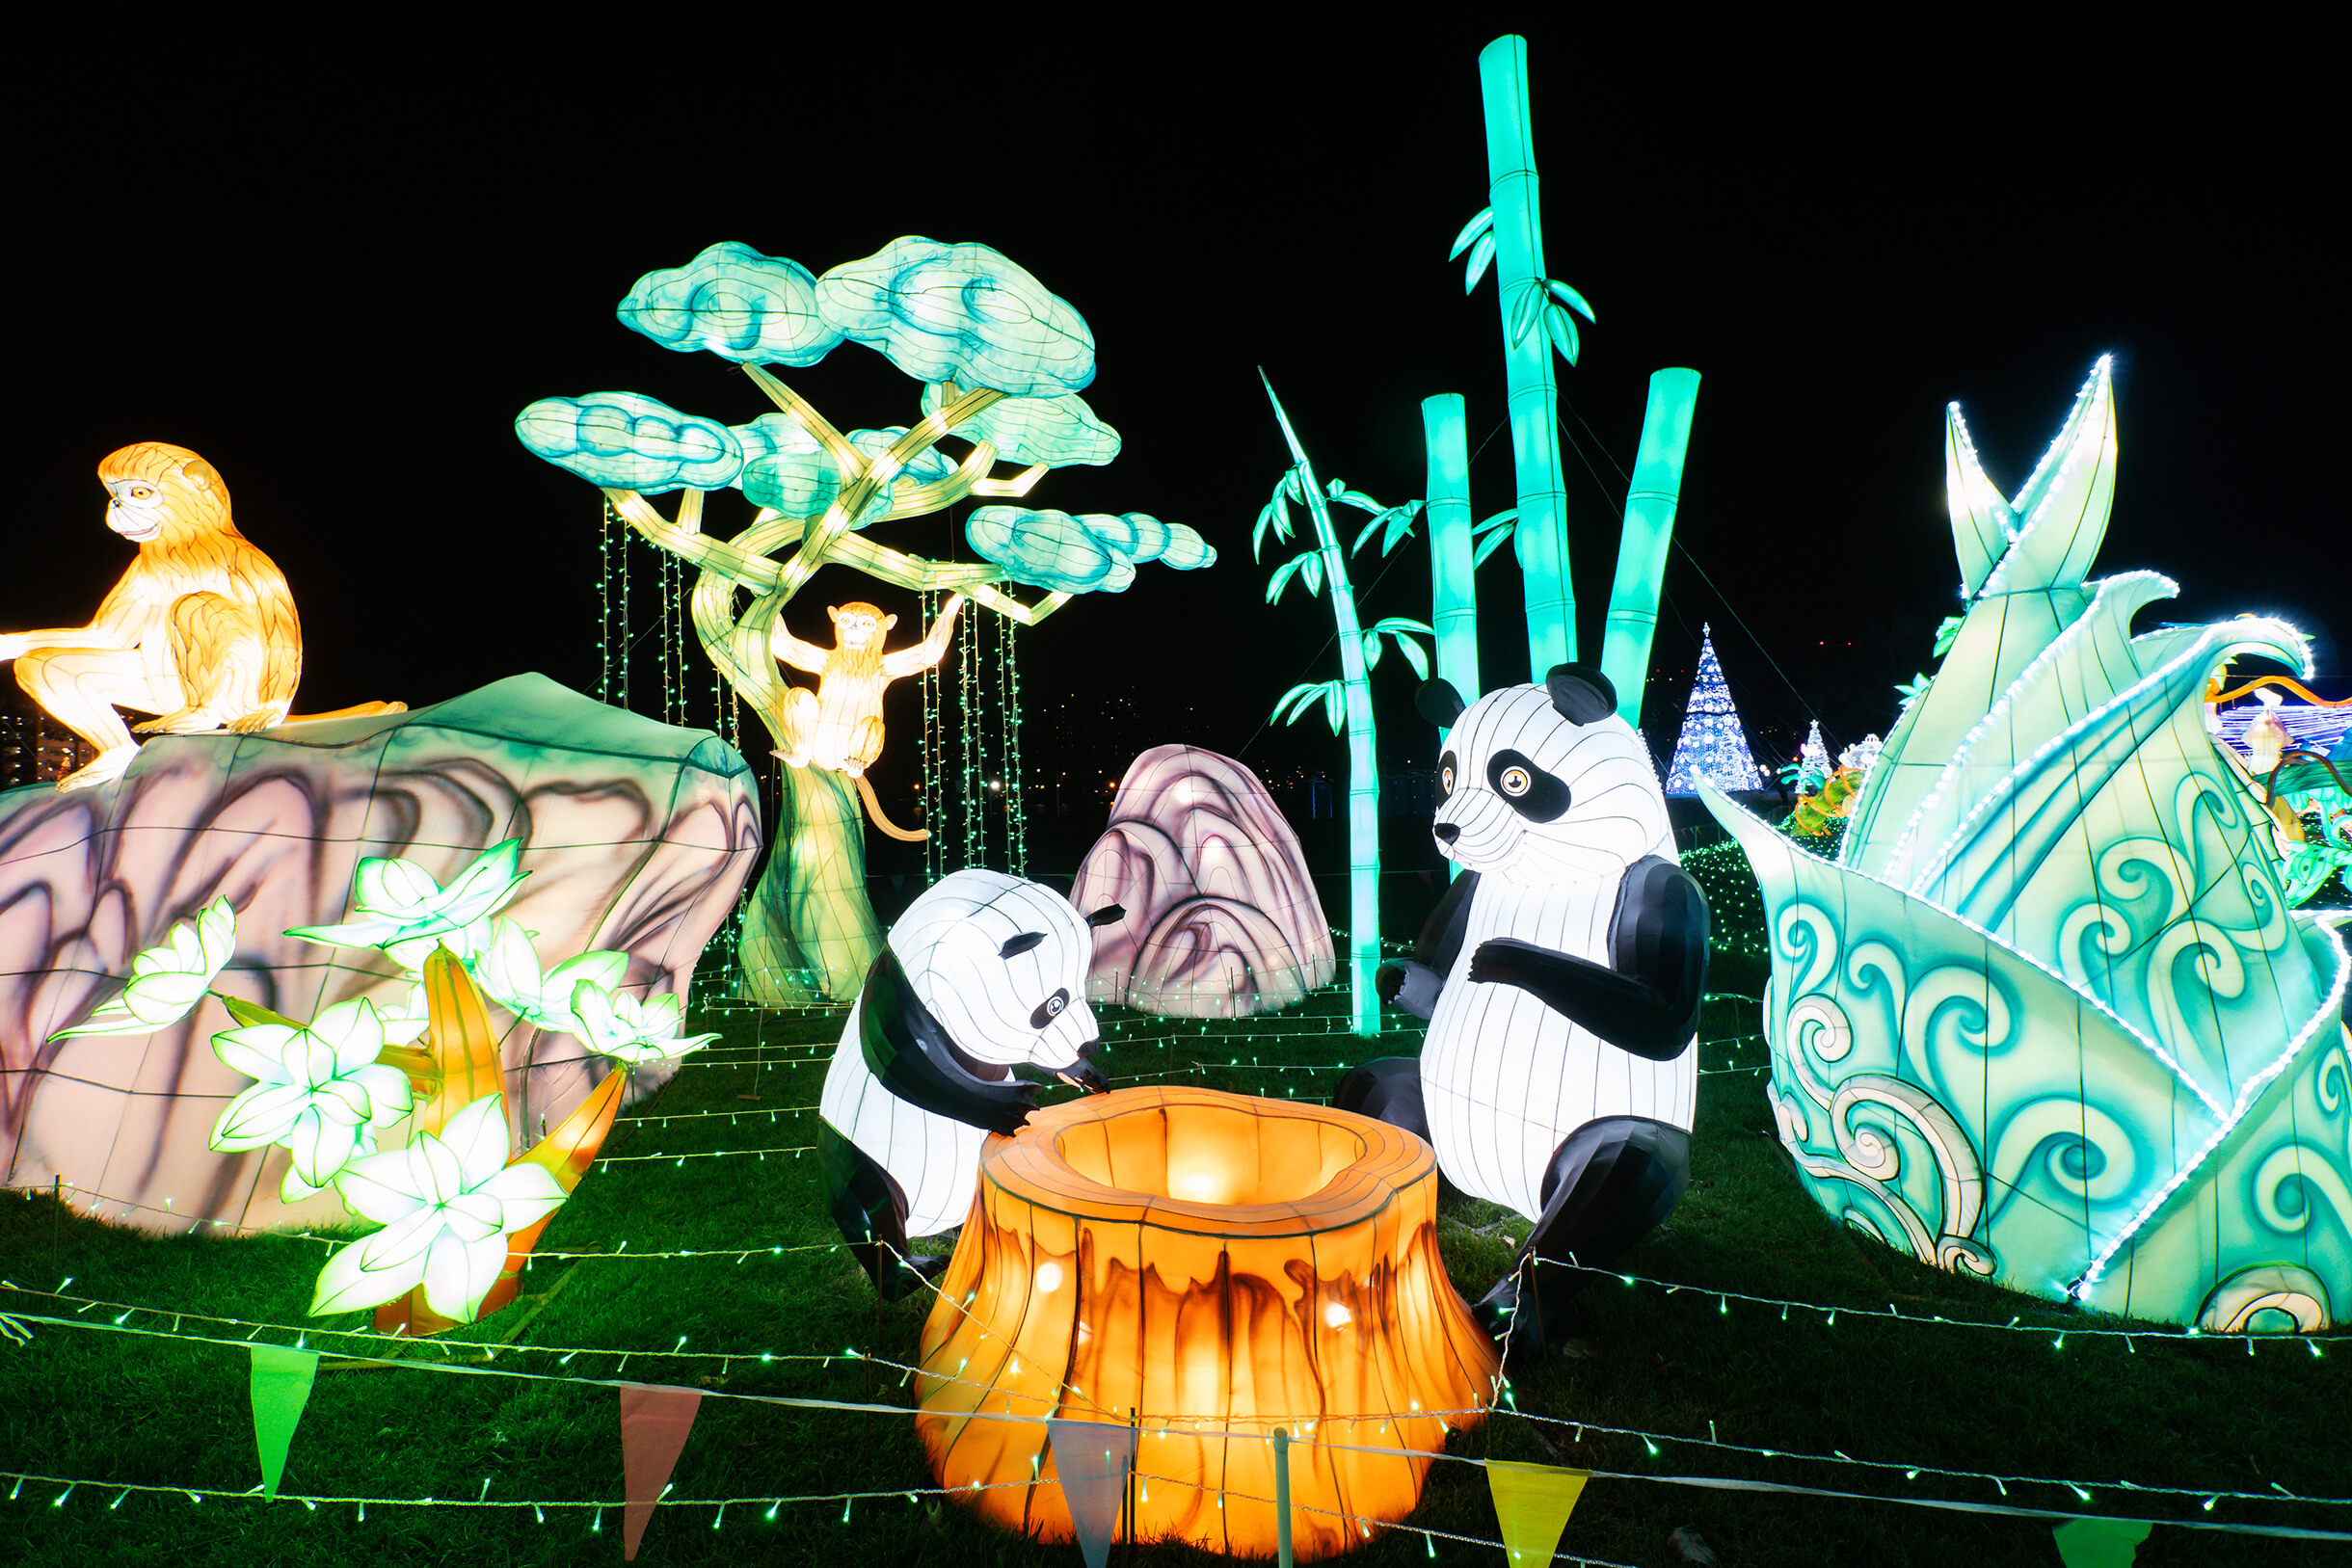 the-birengxia-panda-reserve-the-wild-adventure-light-arts-luminocity-festival-rendered-image